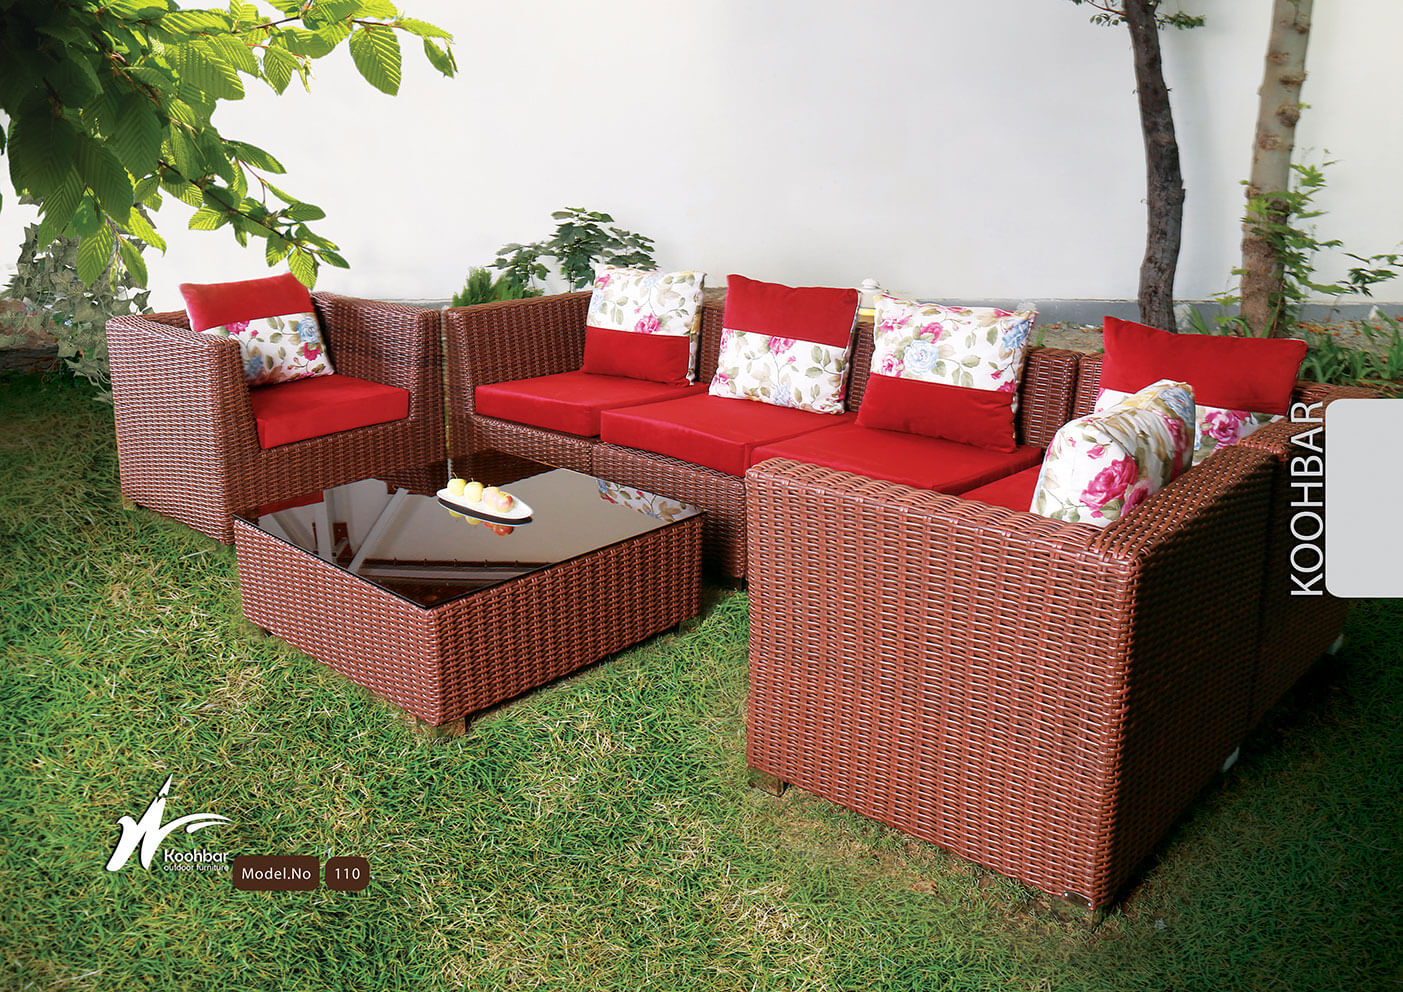 kohbar patio conversation sets 110 model0 - ست نشیمن باغی کوهبر مدل ۱۱۰ - - patio-conversation-sets